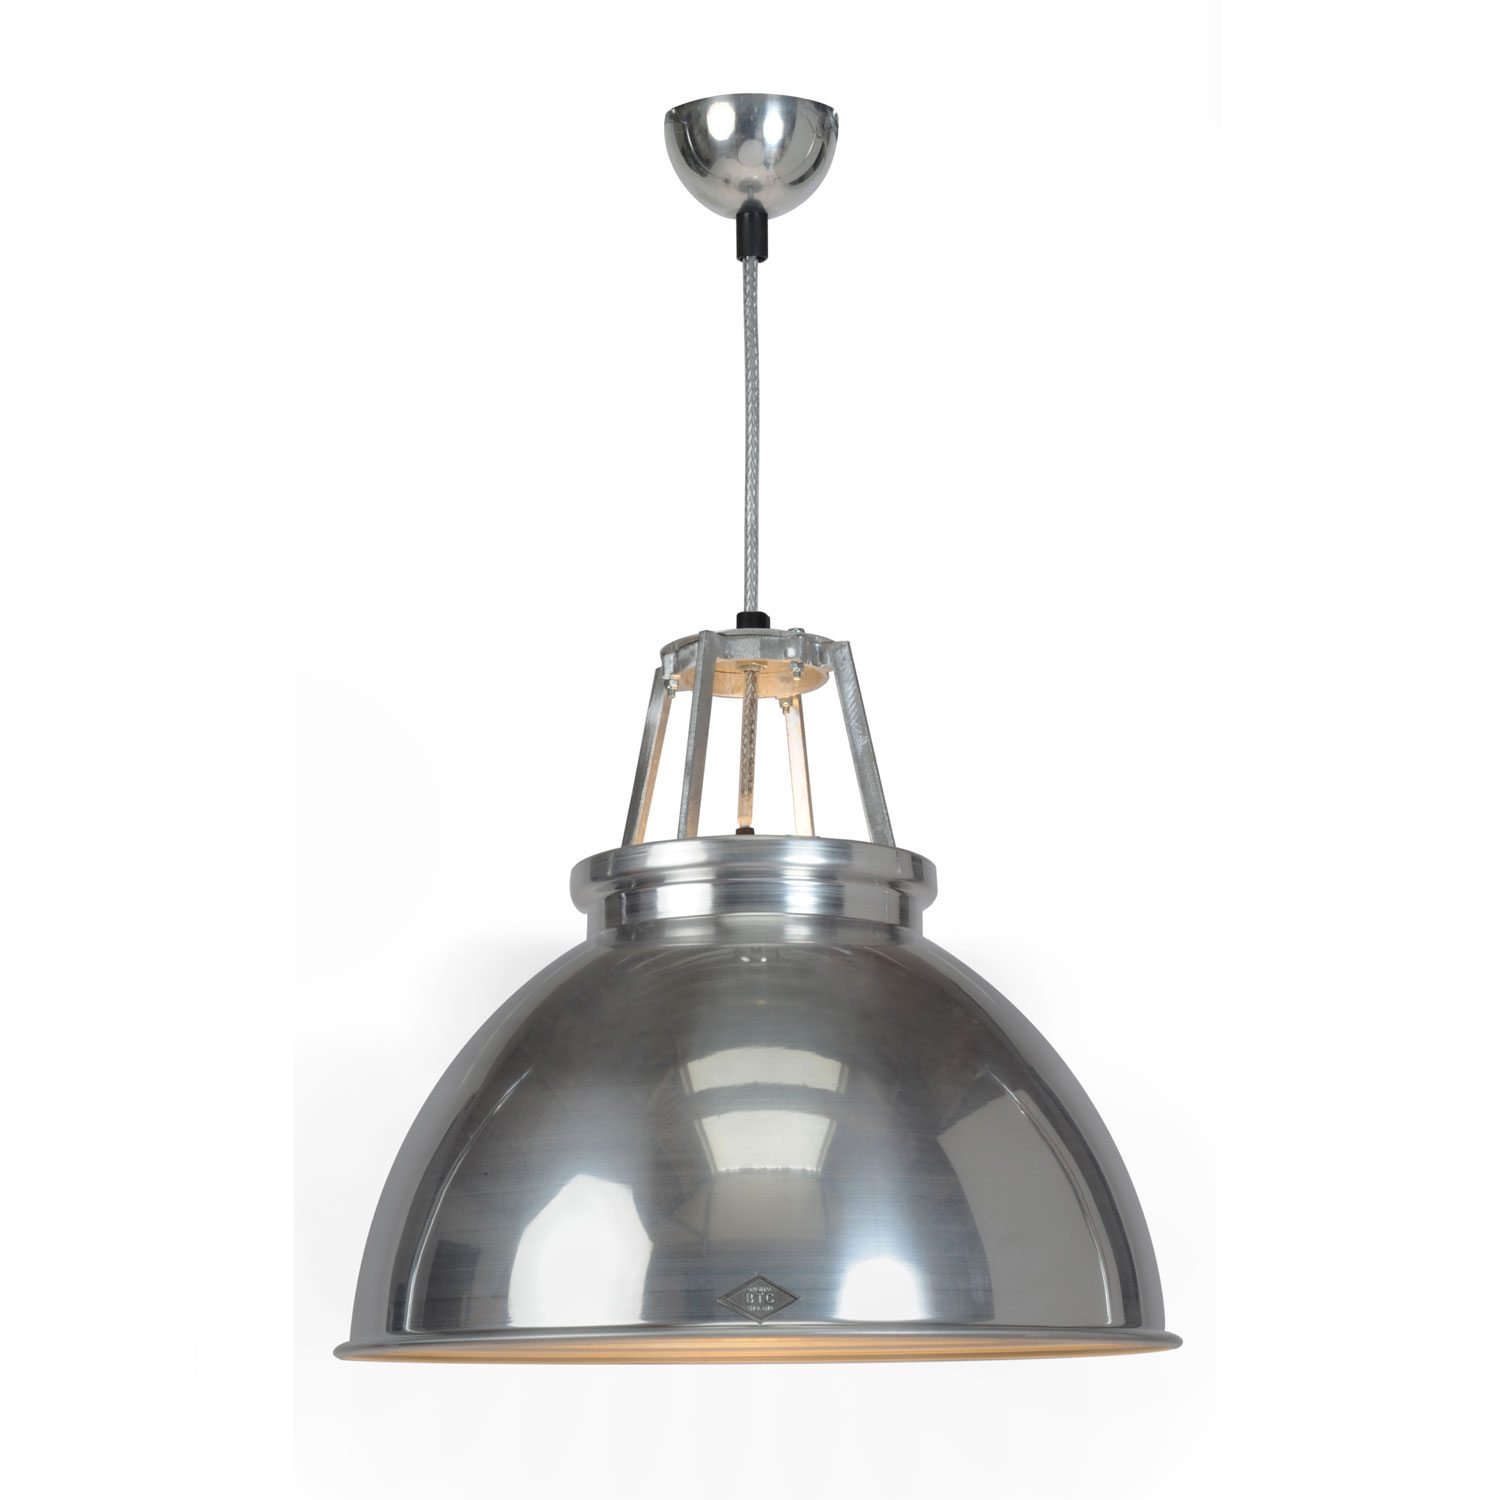 Titan Size 3 Pendant Light, Natural Aluminium